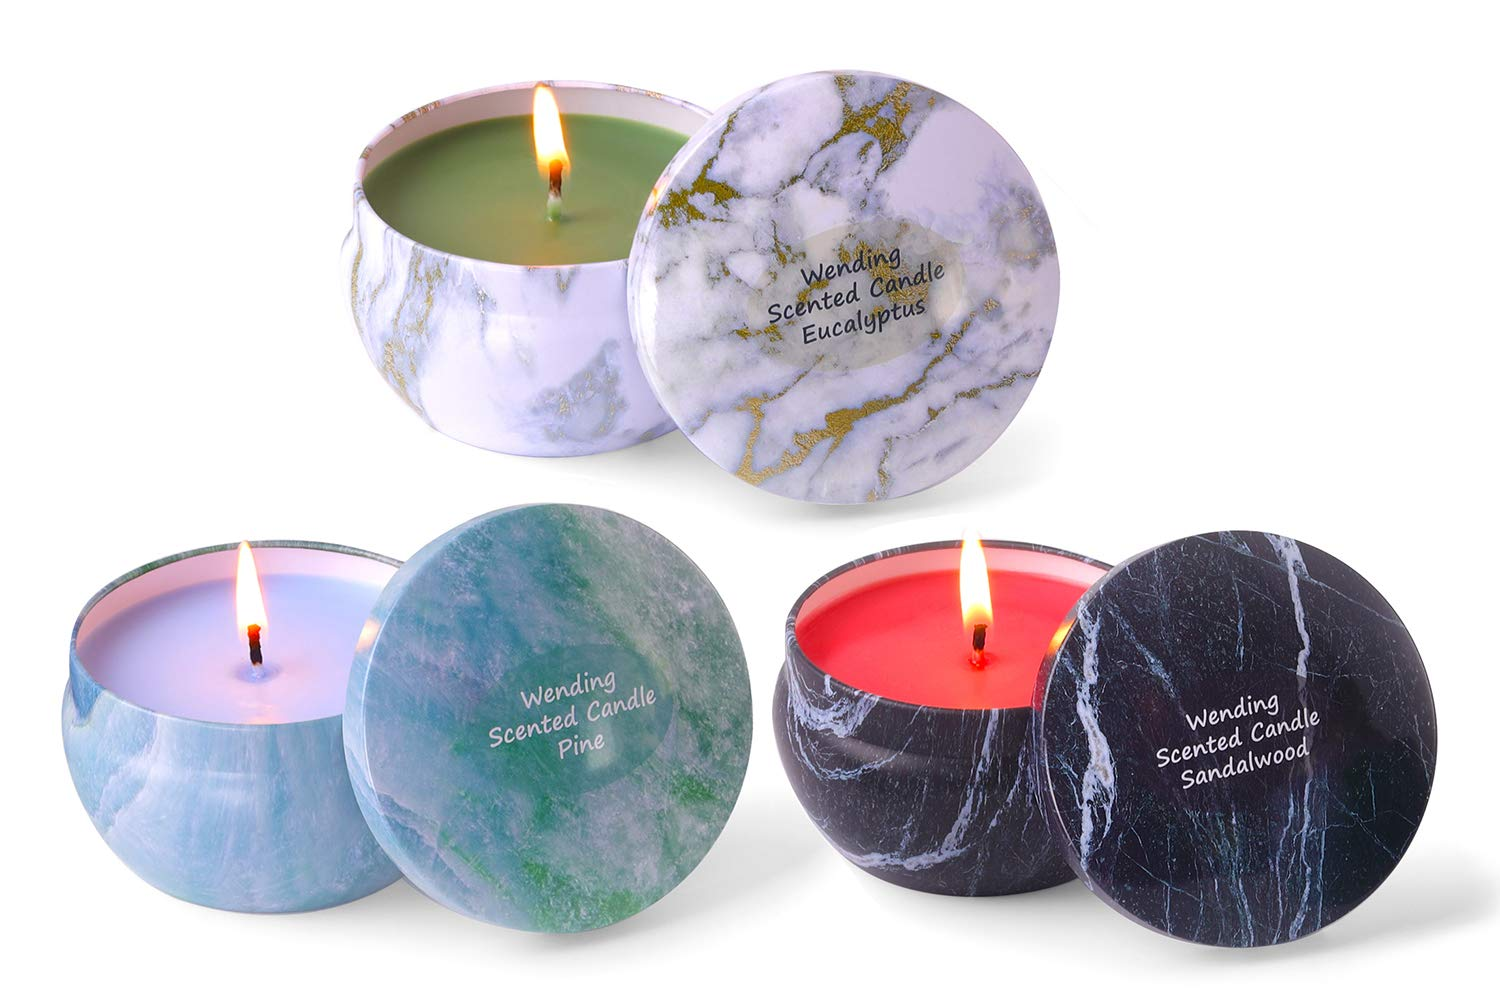 3 Soy Wax Candles 8.1oz Each of Sandalwood, Pine, Eucalyptus Long Burning Total 135H Up Large Travel Tin Scented Candle to Create Mood & Enhance Atmospheres, Aromatherapy & Stress Relief for Women Men by Wending (Image #1)